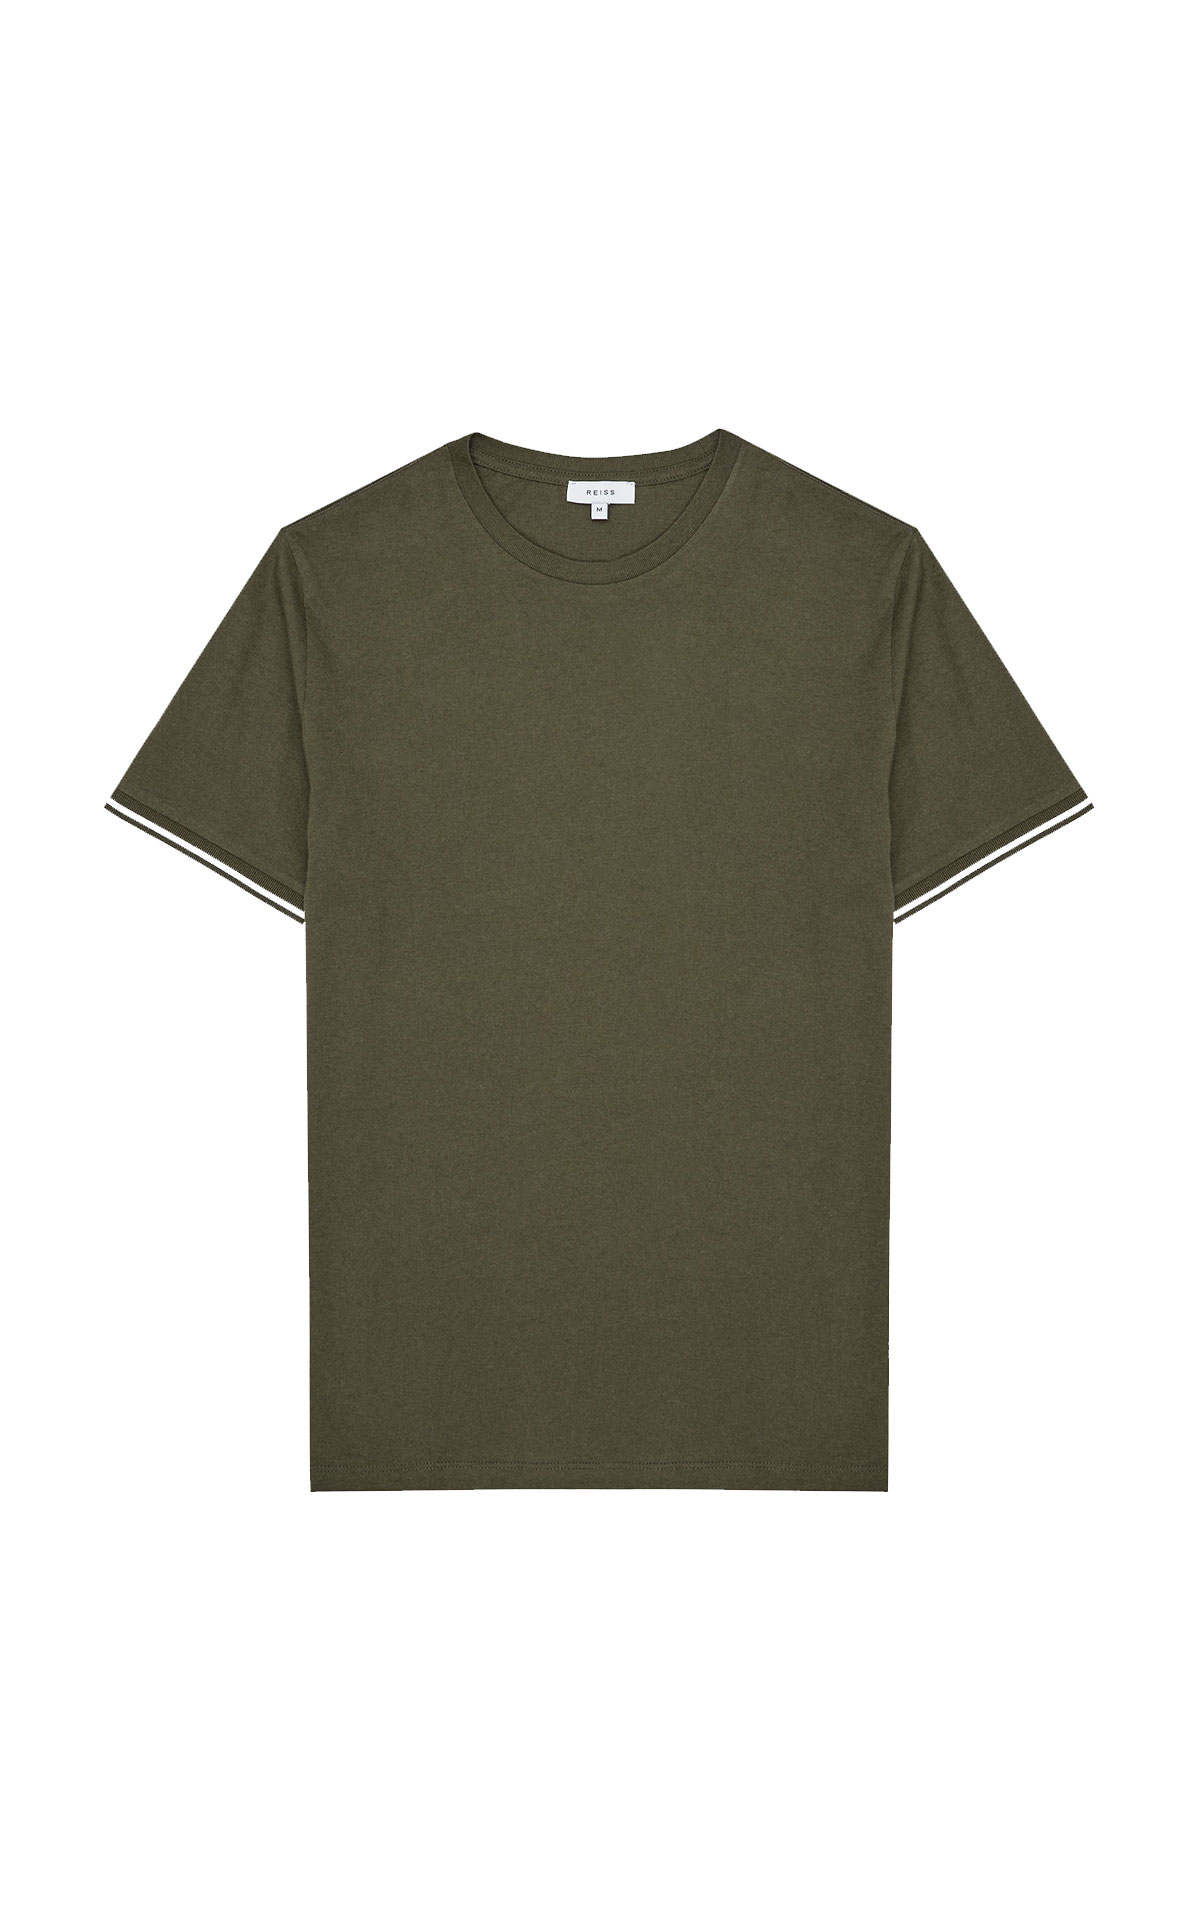 Reiss Harrison army green t-shirt from Bicester Village